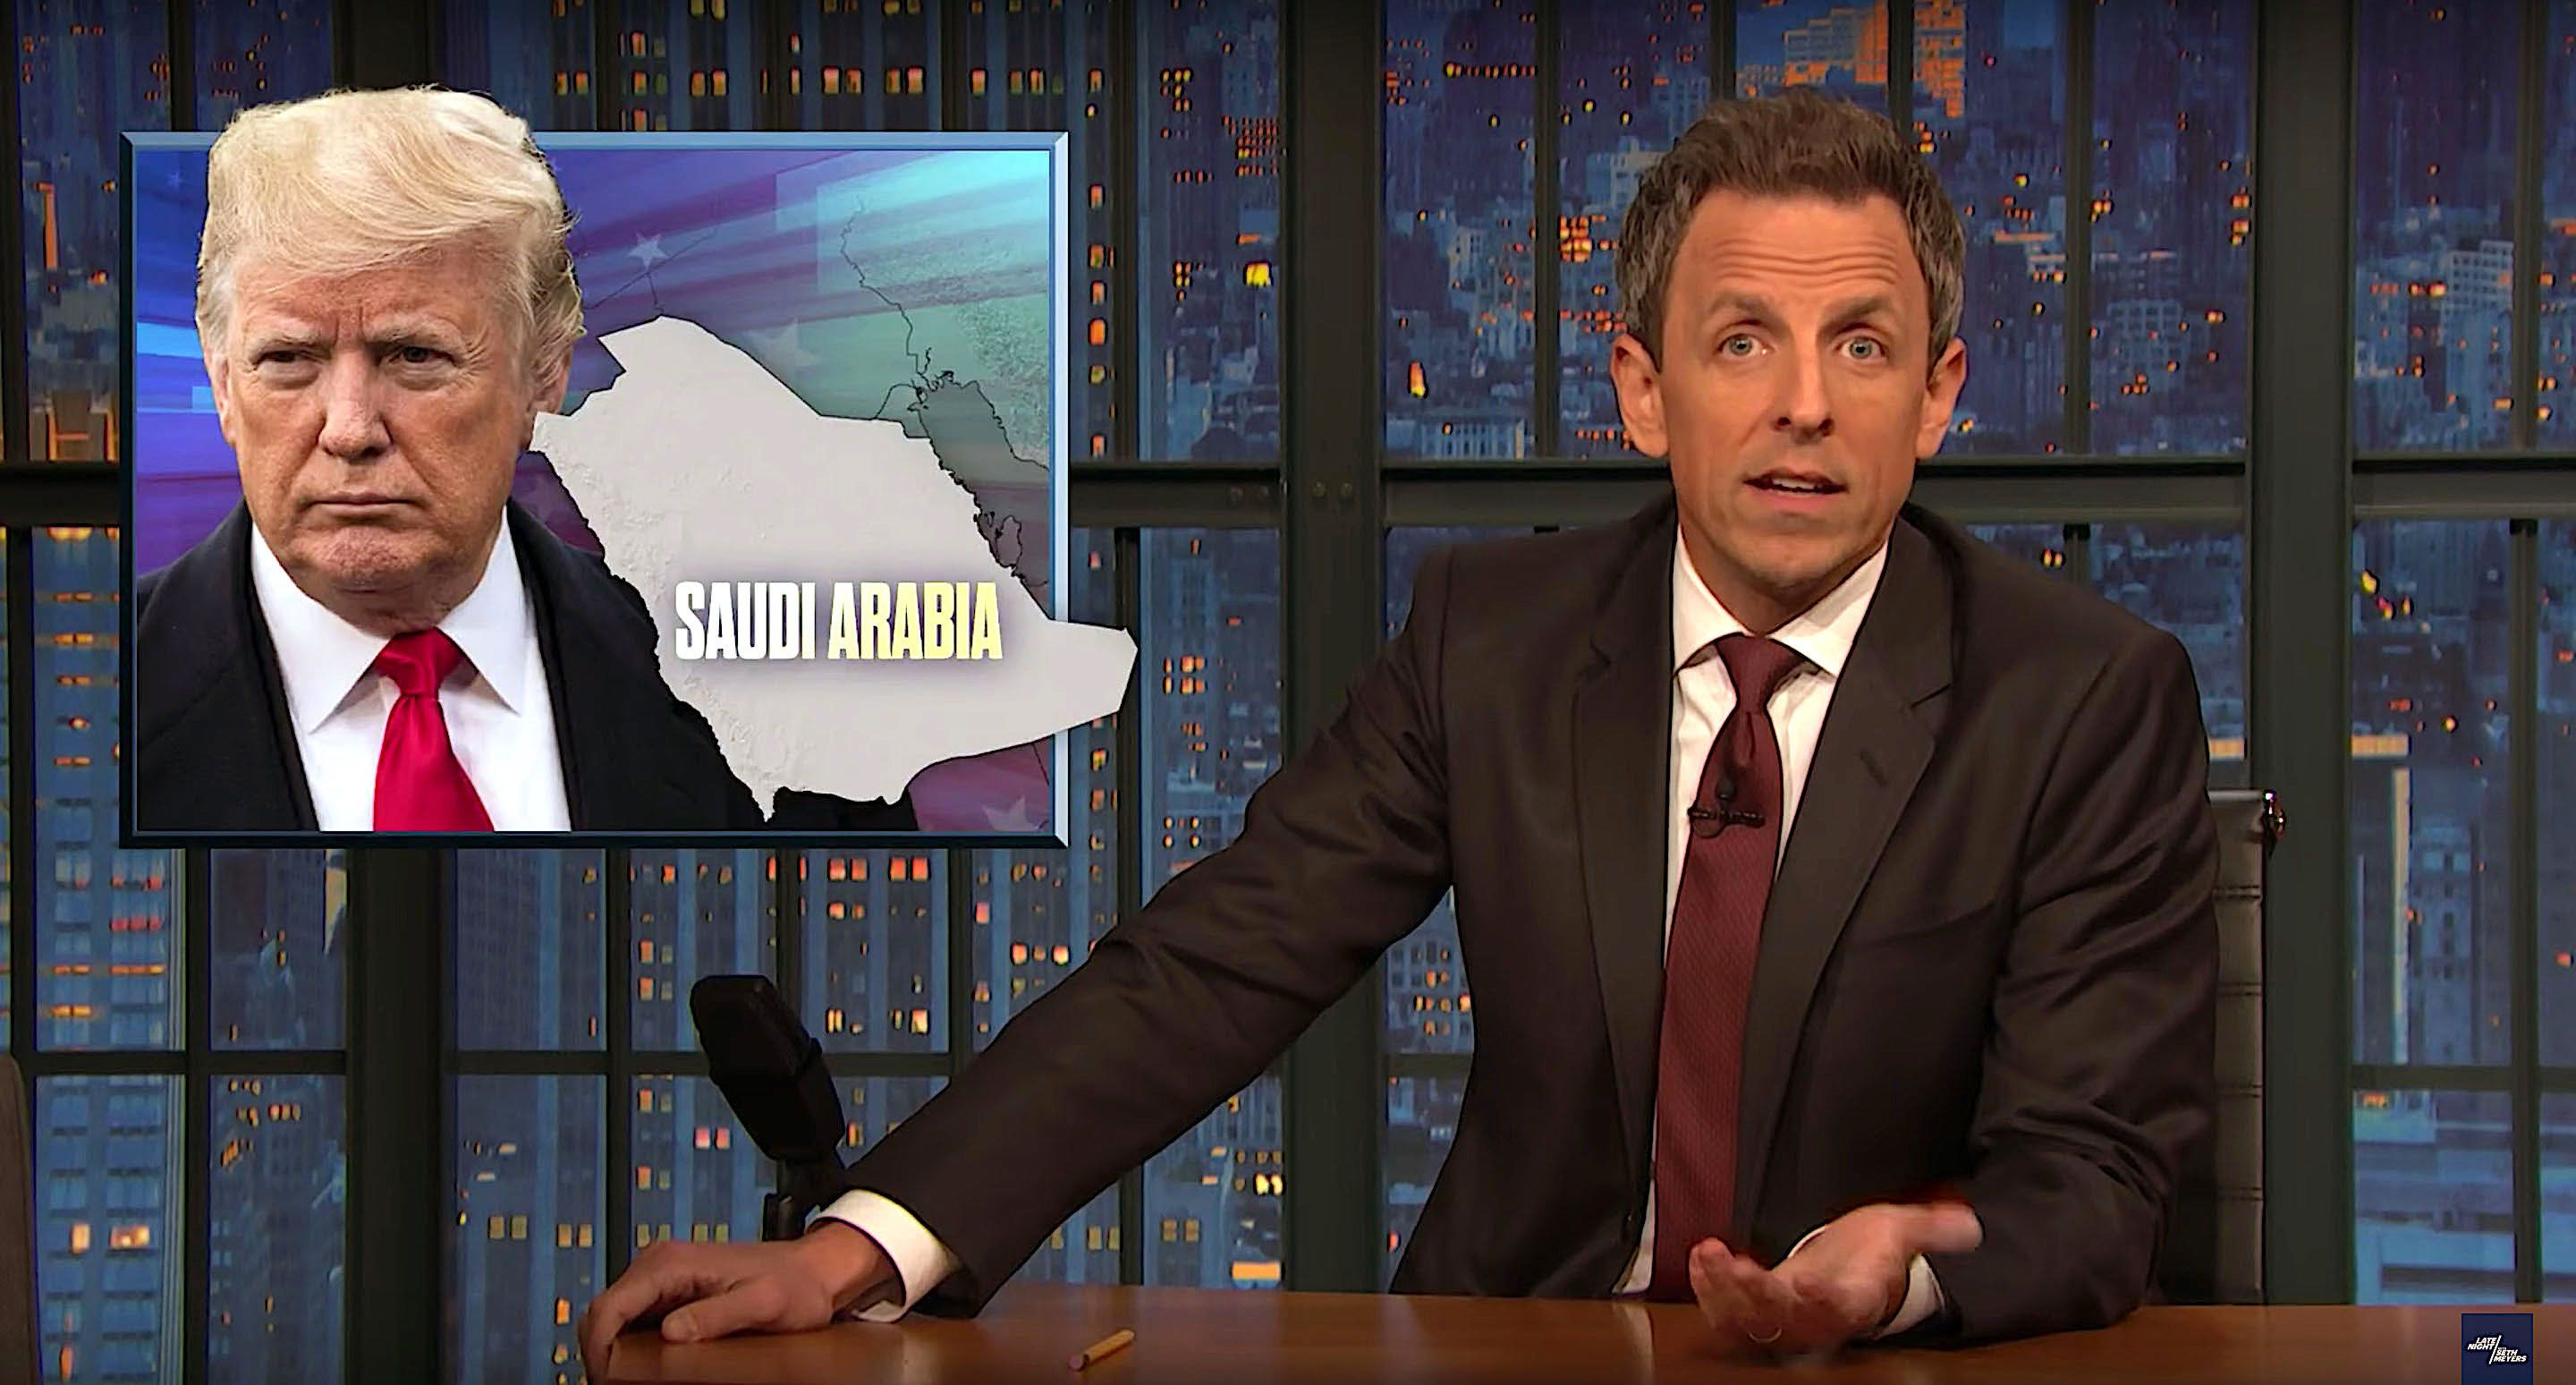 Seth Meyers talks about how important loyalty is to President Donald Trump.